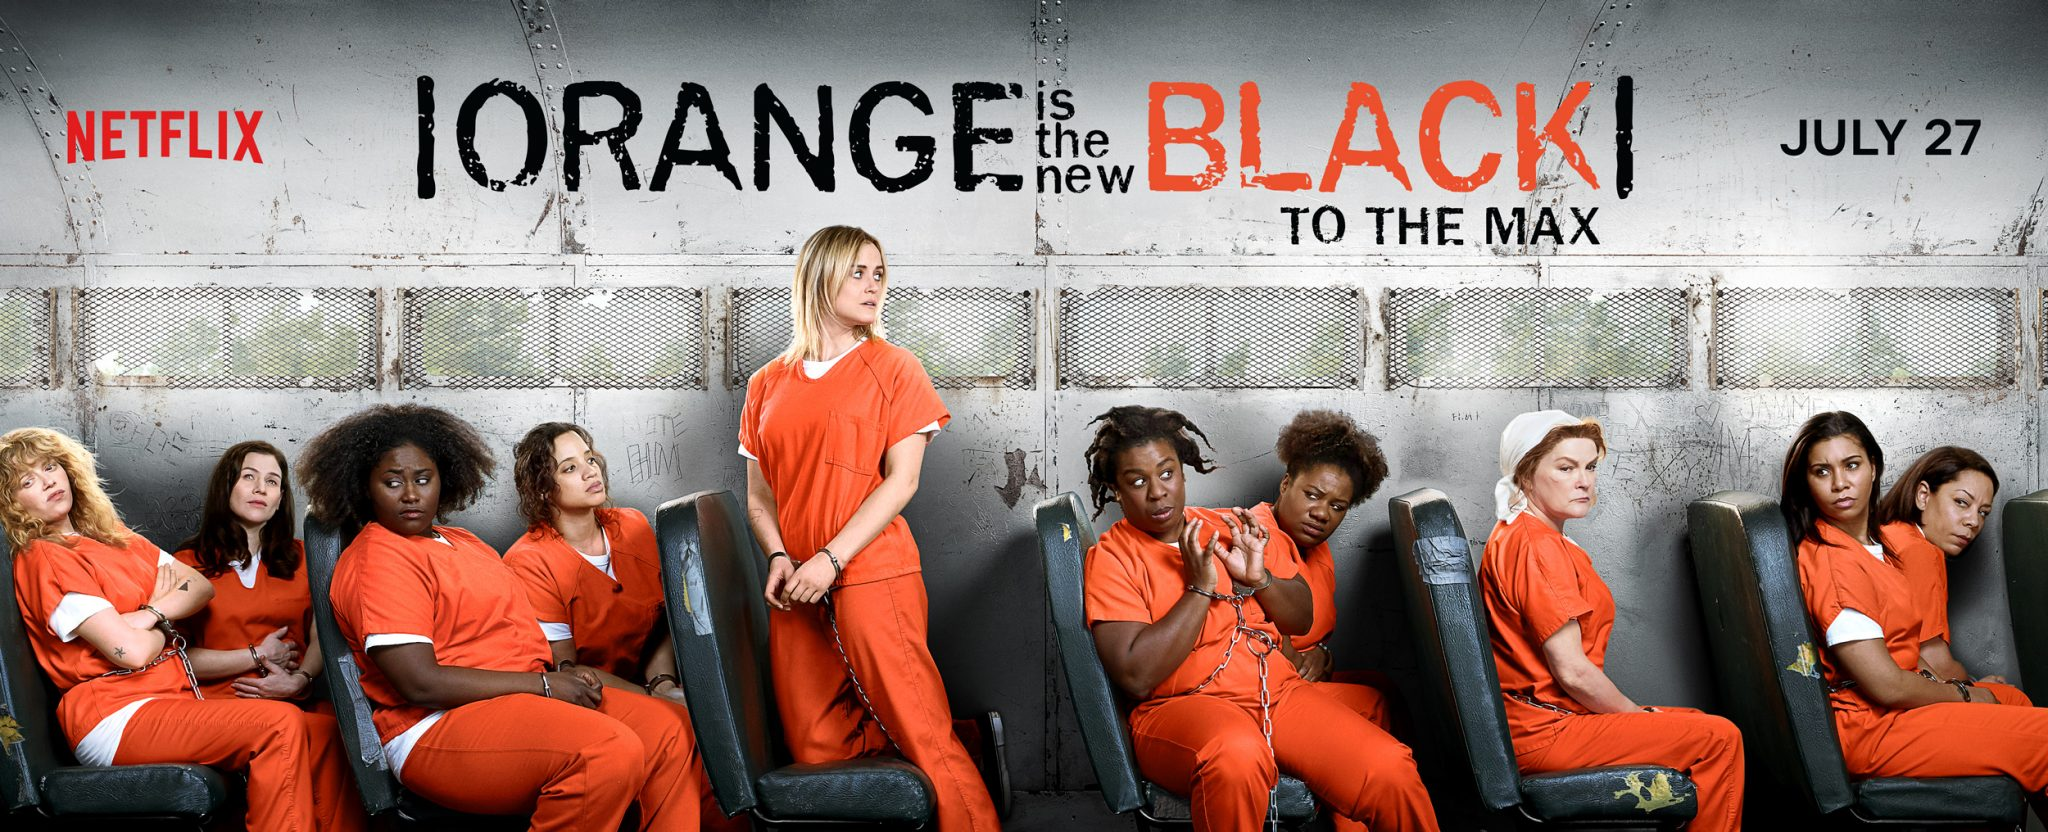 orange_is_the_new_black.jpg